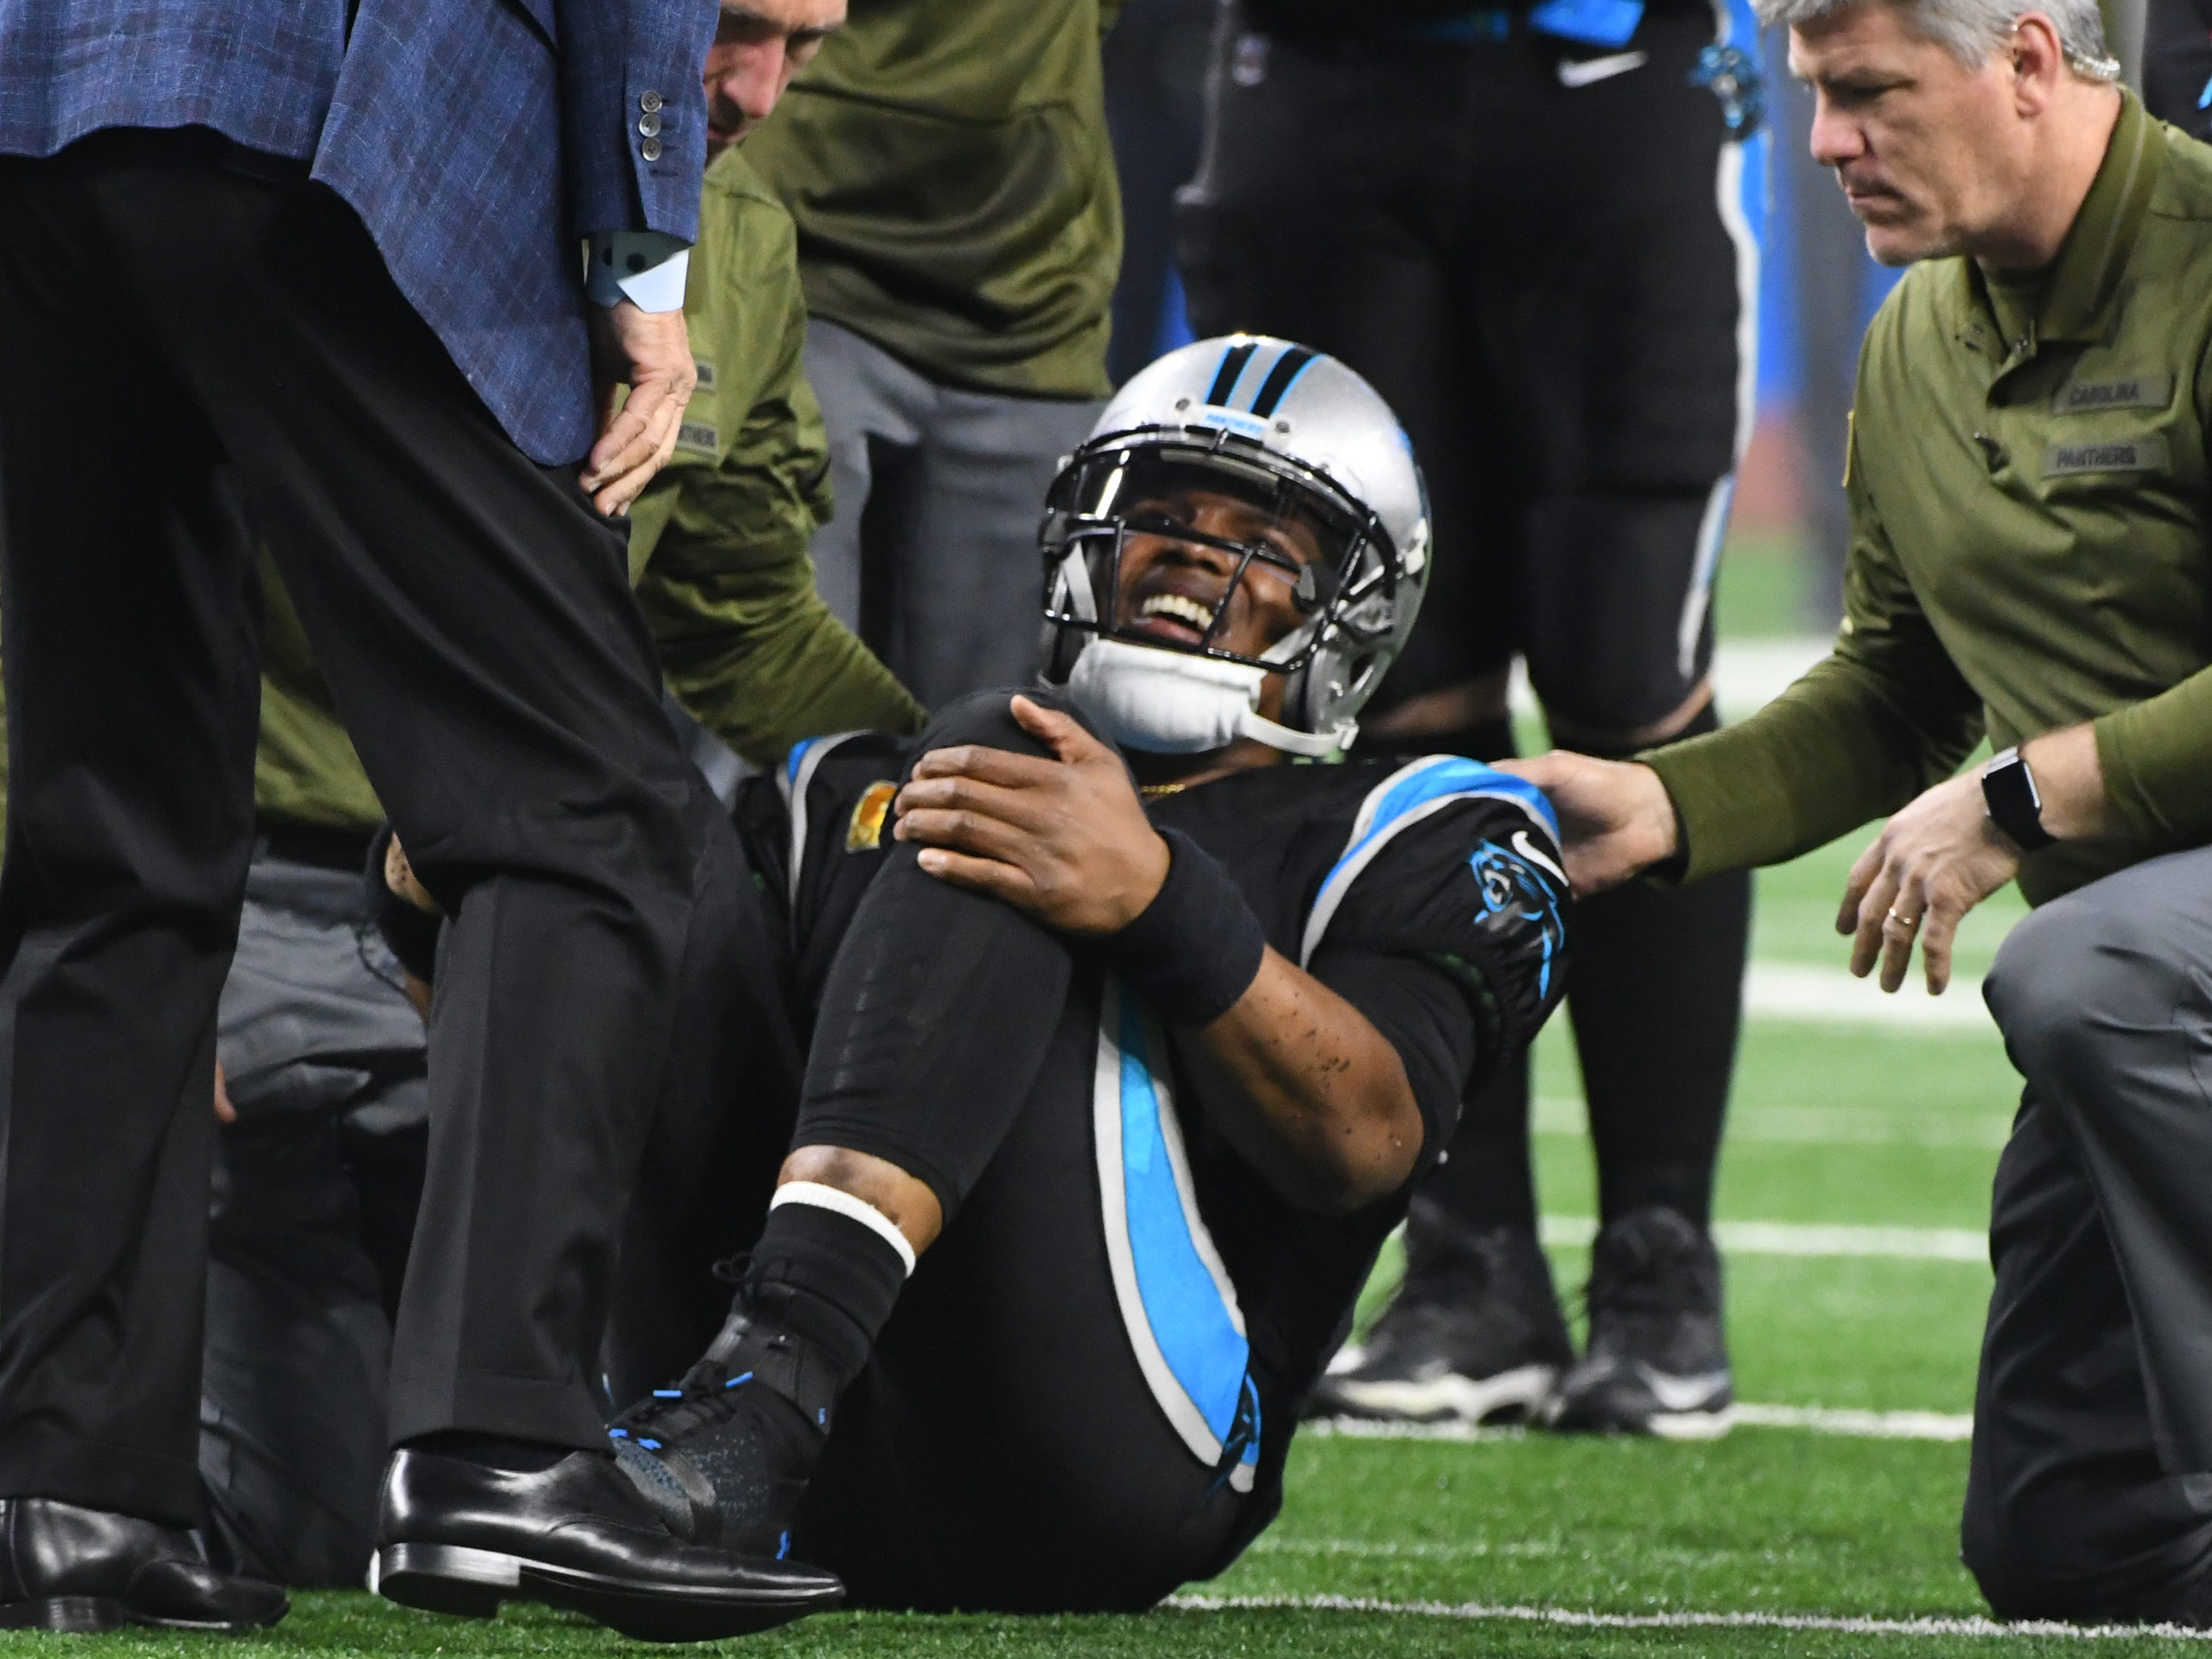 Panthers quarterback Cam Newton is slow to get up after a hit in the third quarter.